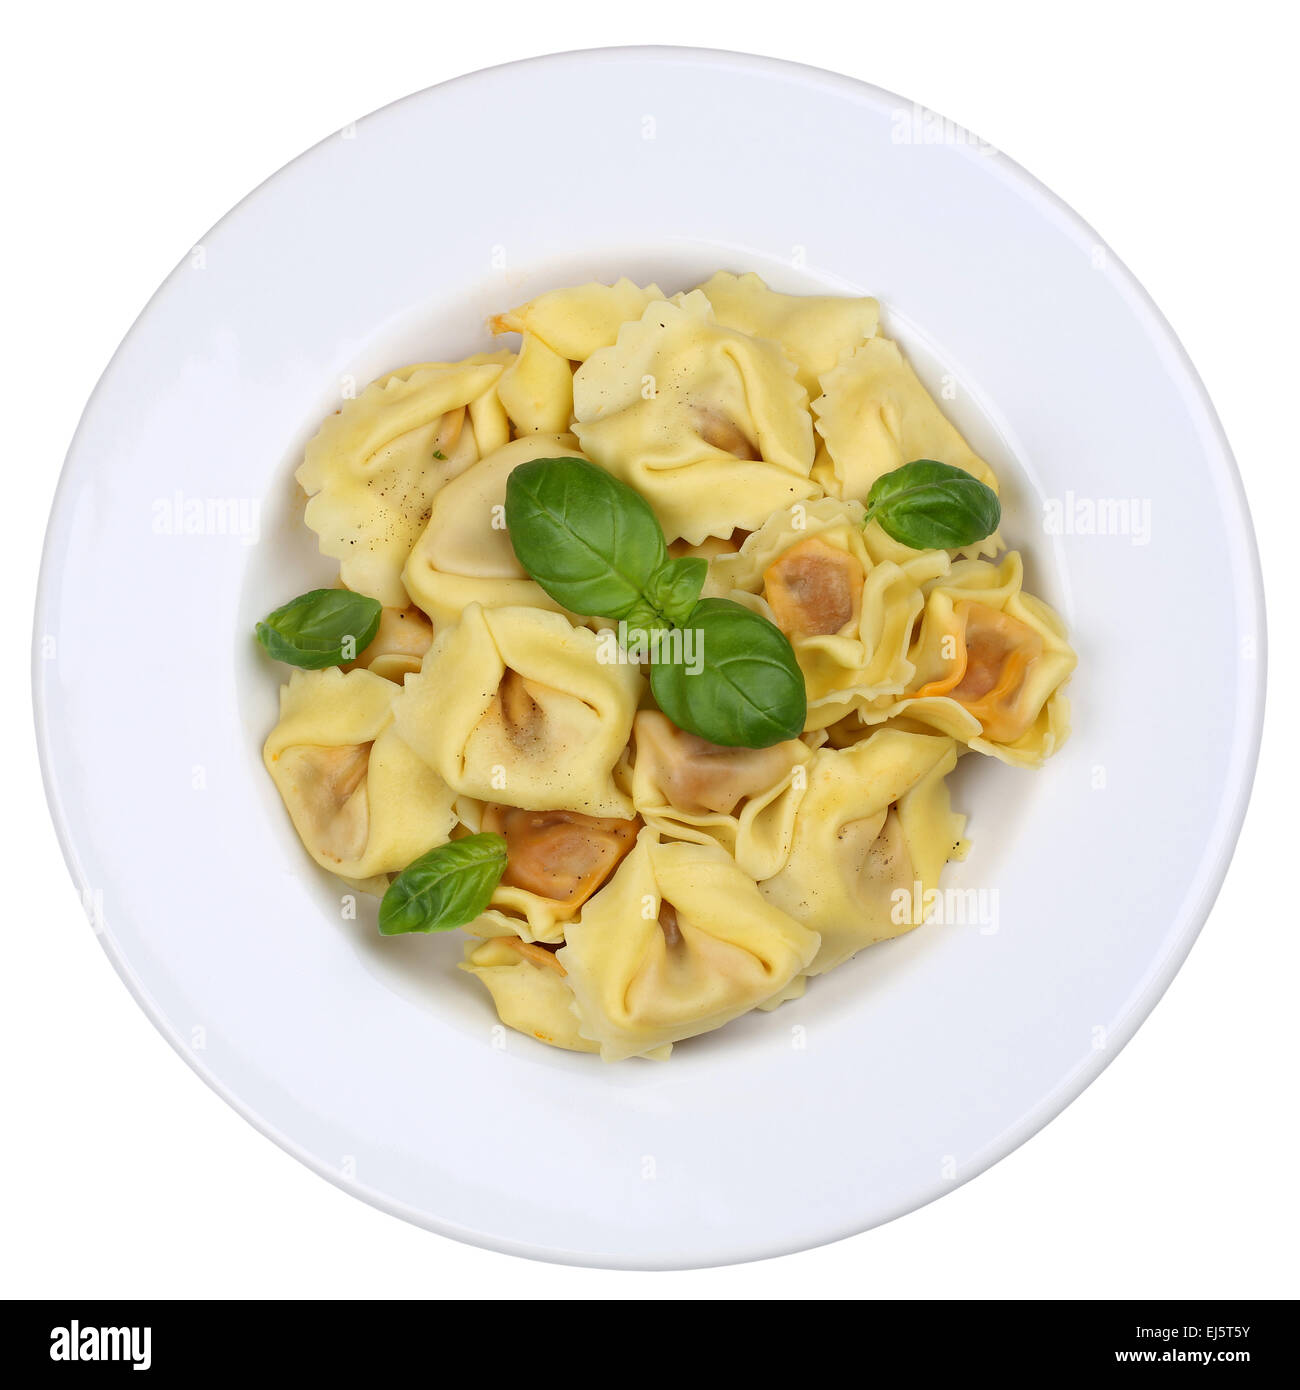 Italian Pasta Tortellini noodles meal with basil isolated on plate - Stock Image